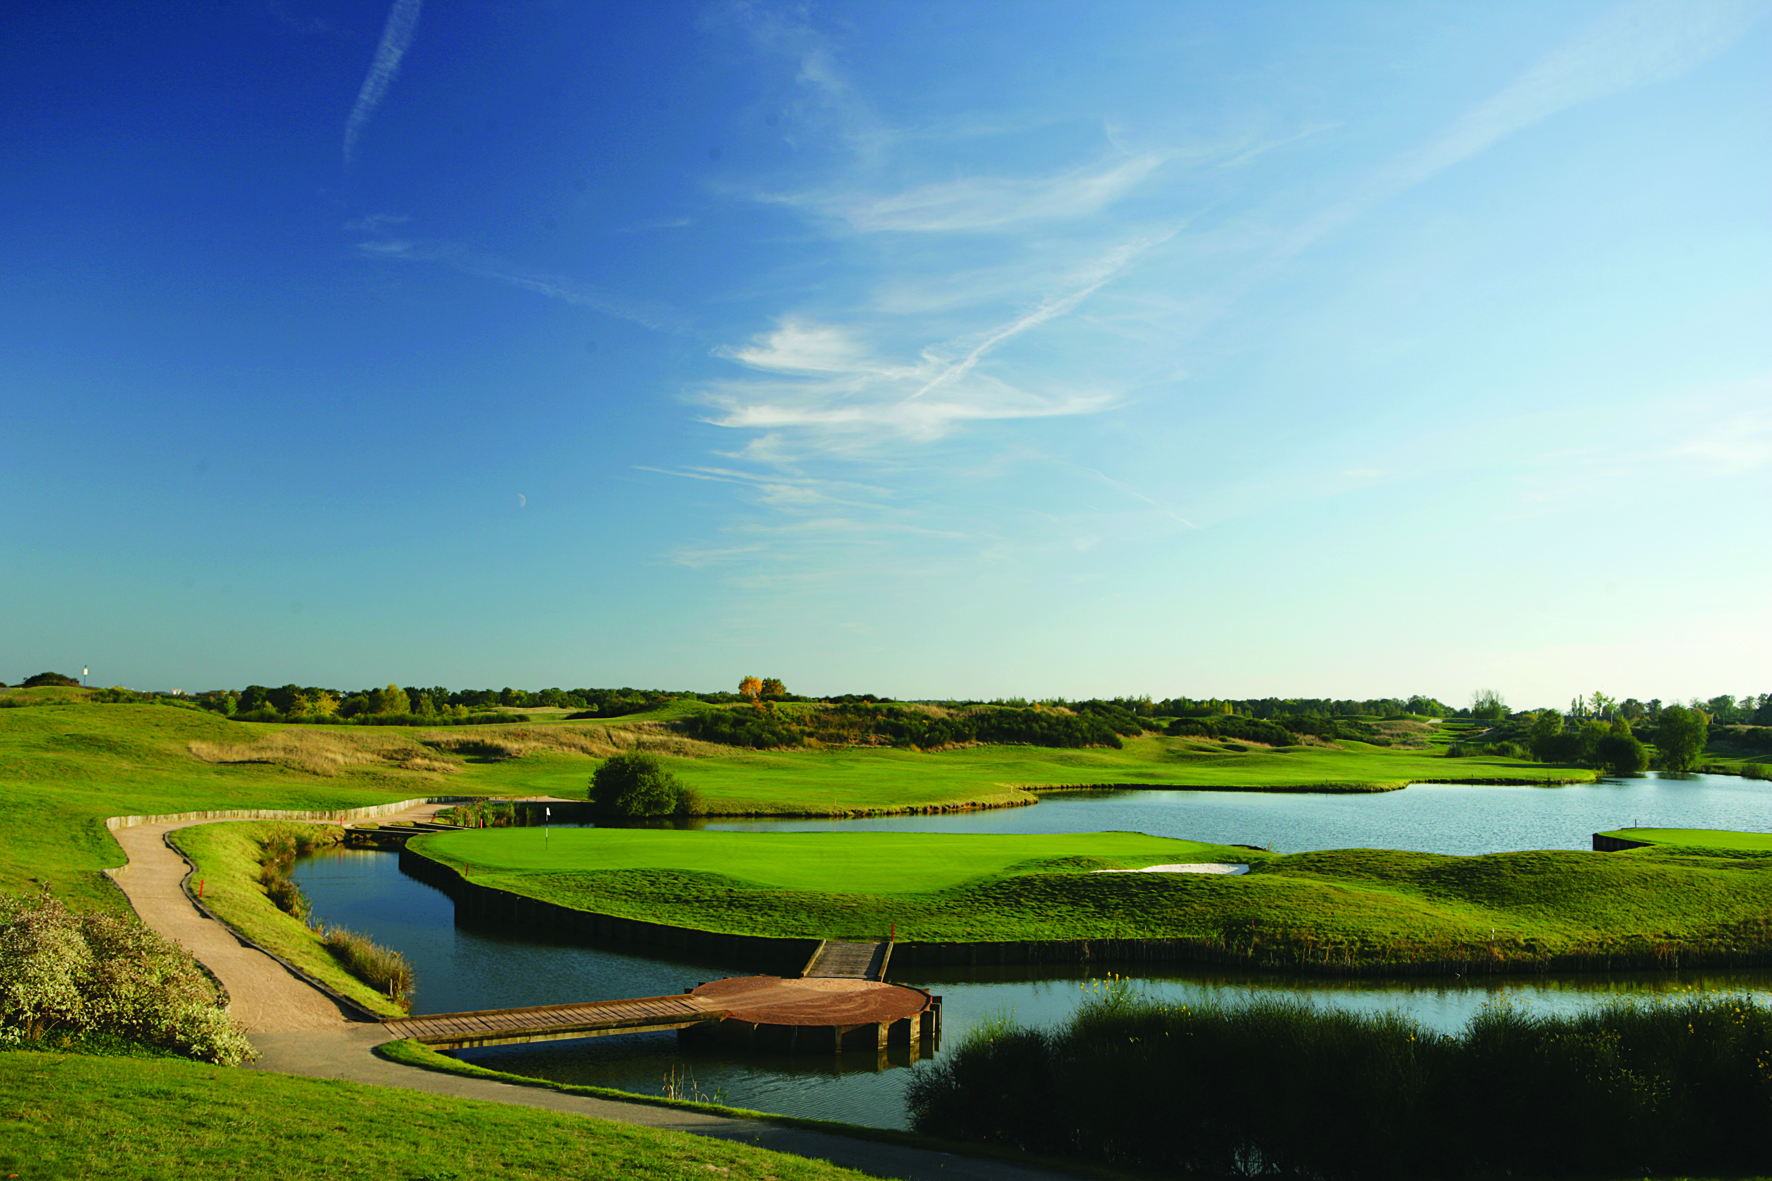 The biennial match will be held on its spectacular L'Albatros course.